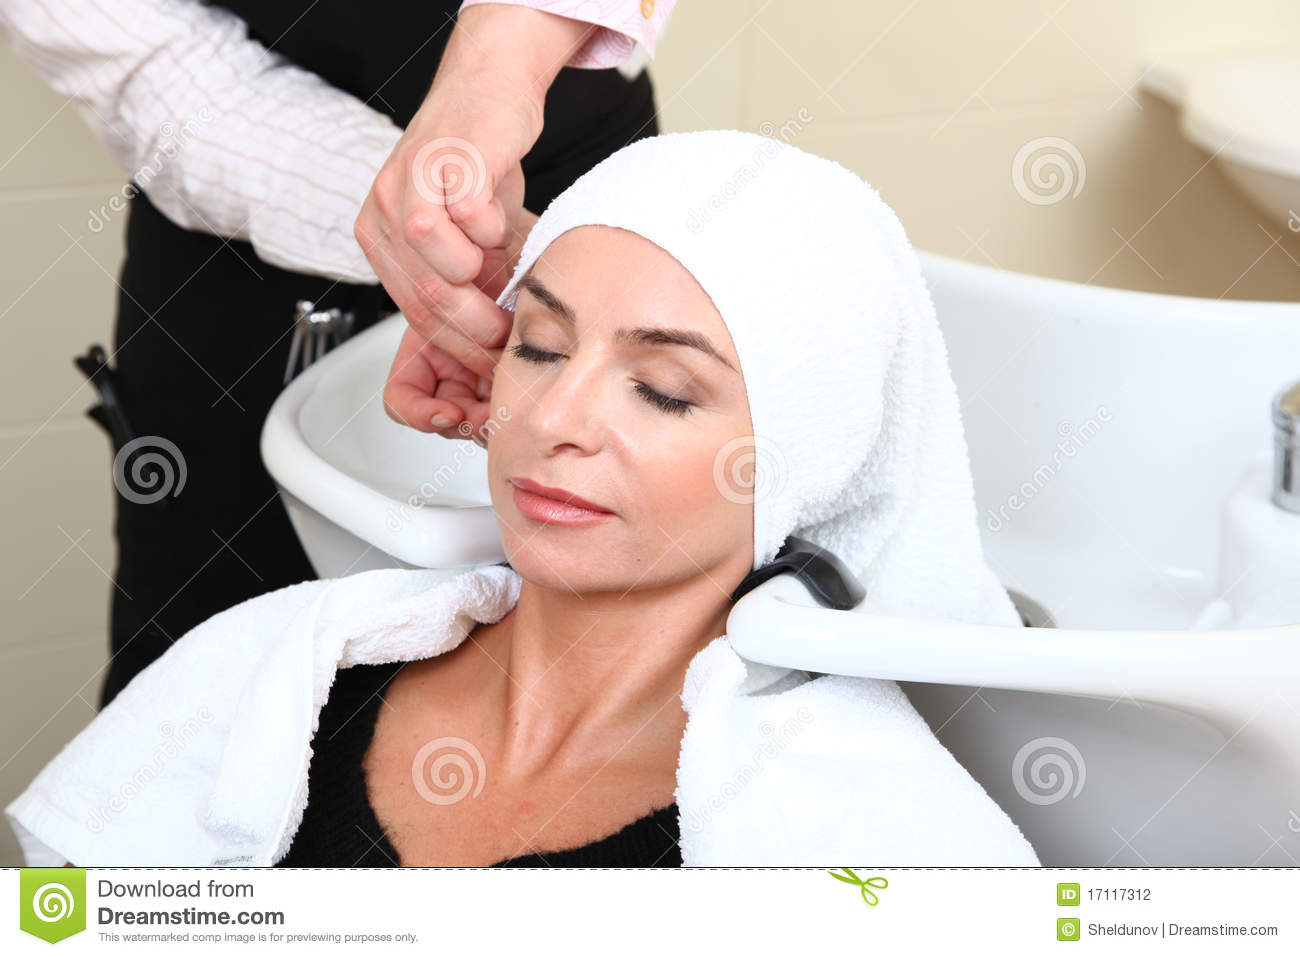 Woman Washing Hair In Salon Pool Stock Photography - Image: 17117312